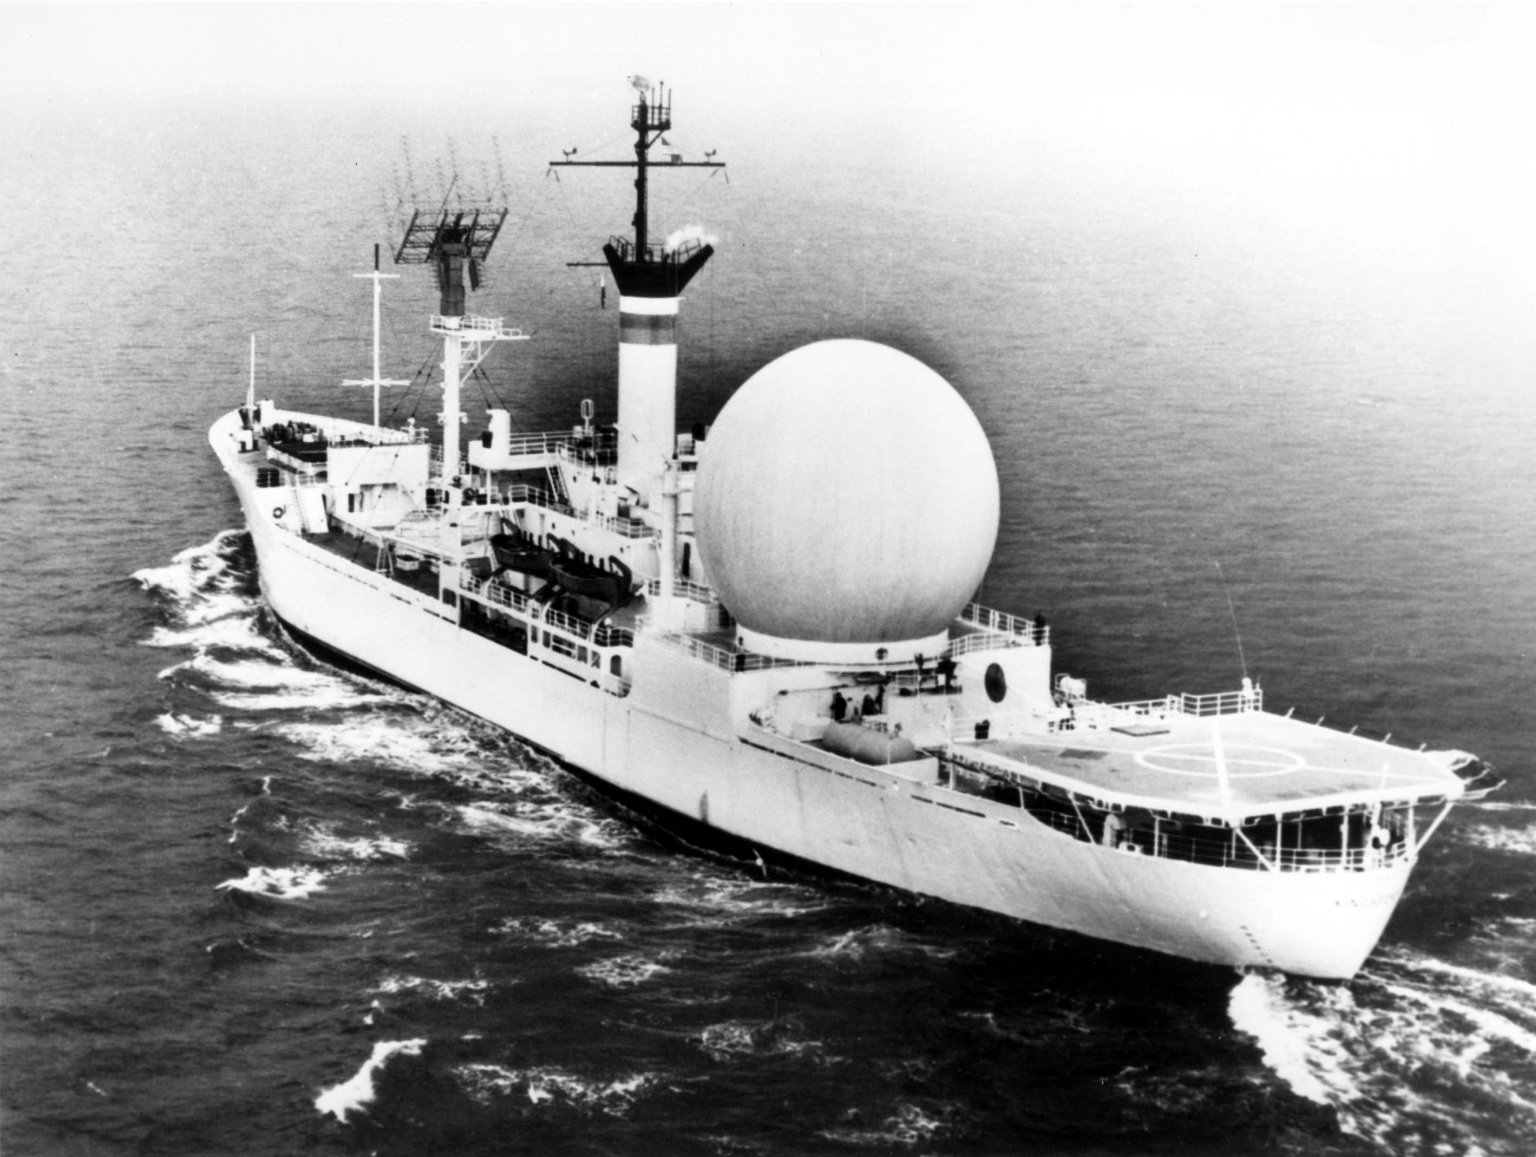 U.S.N.S. Kingsport, the first satellite communication ship